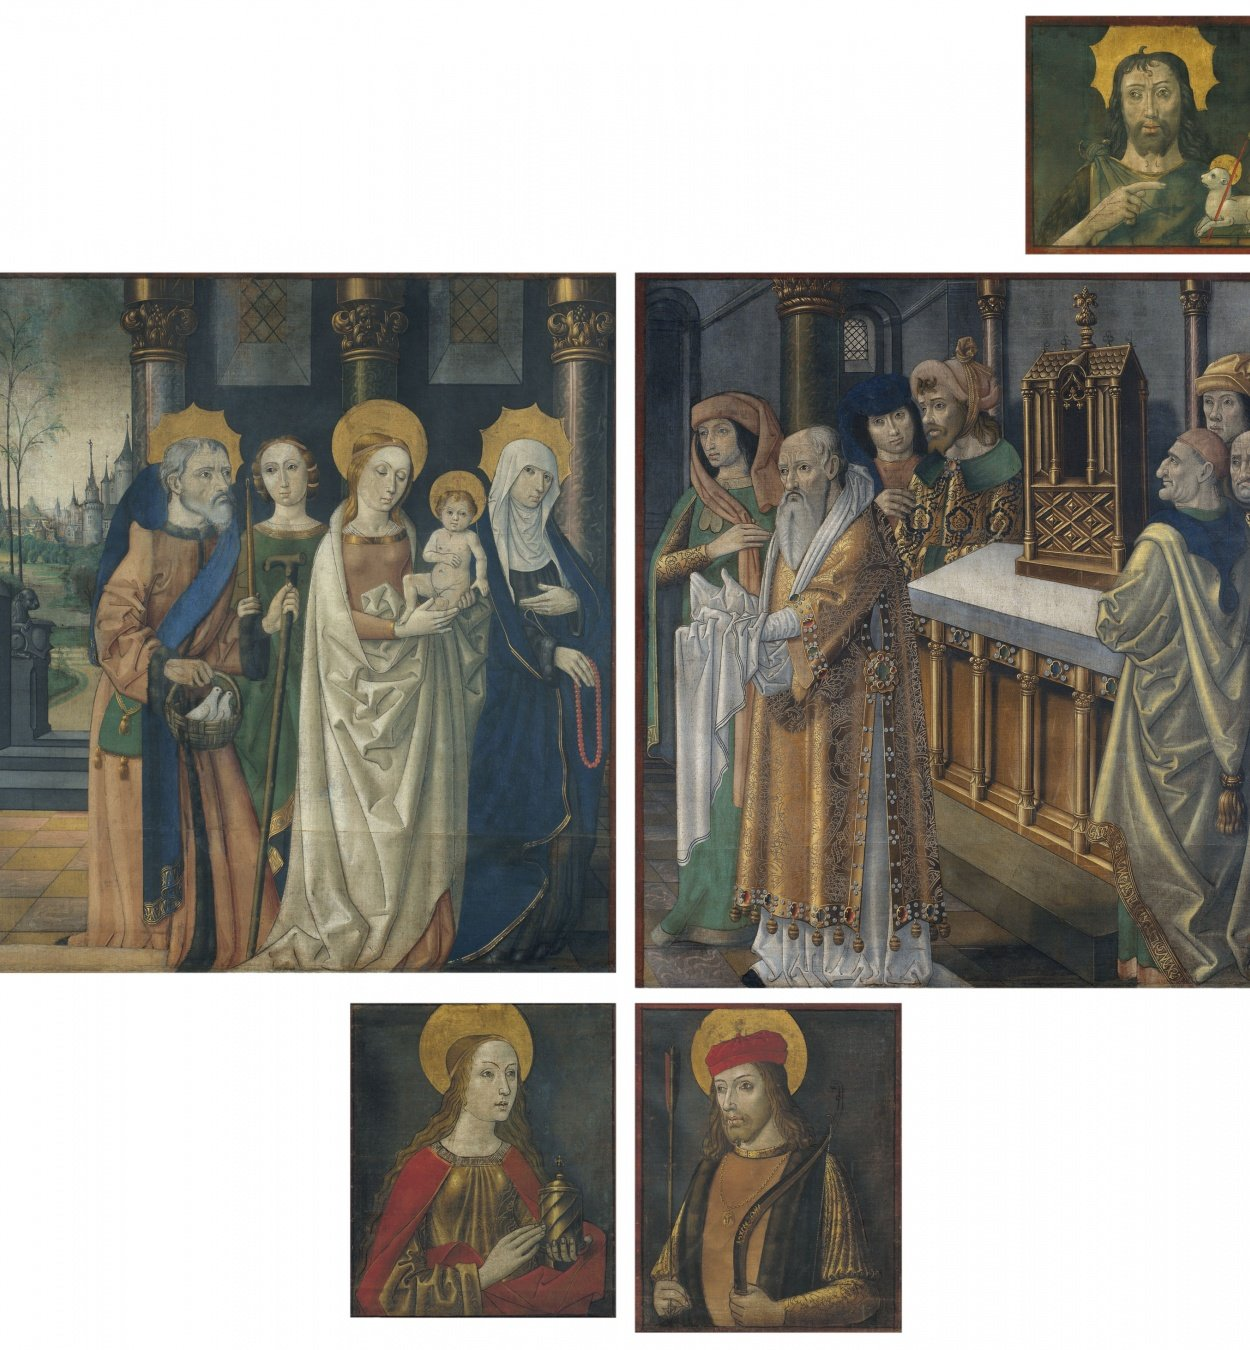 Mestre de la Seu d'Urgell - Paintings from the doors of the organ from La Seu d'Urgell cathedral - Circa 1495-1498